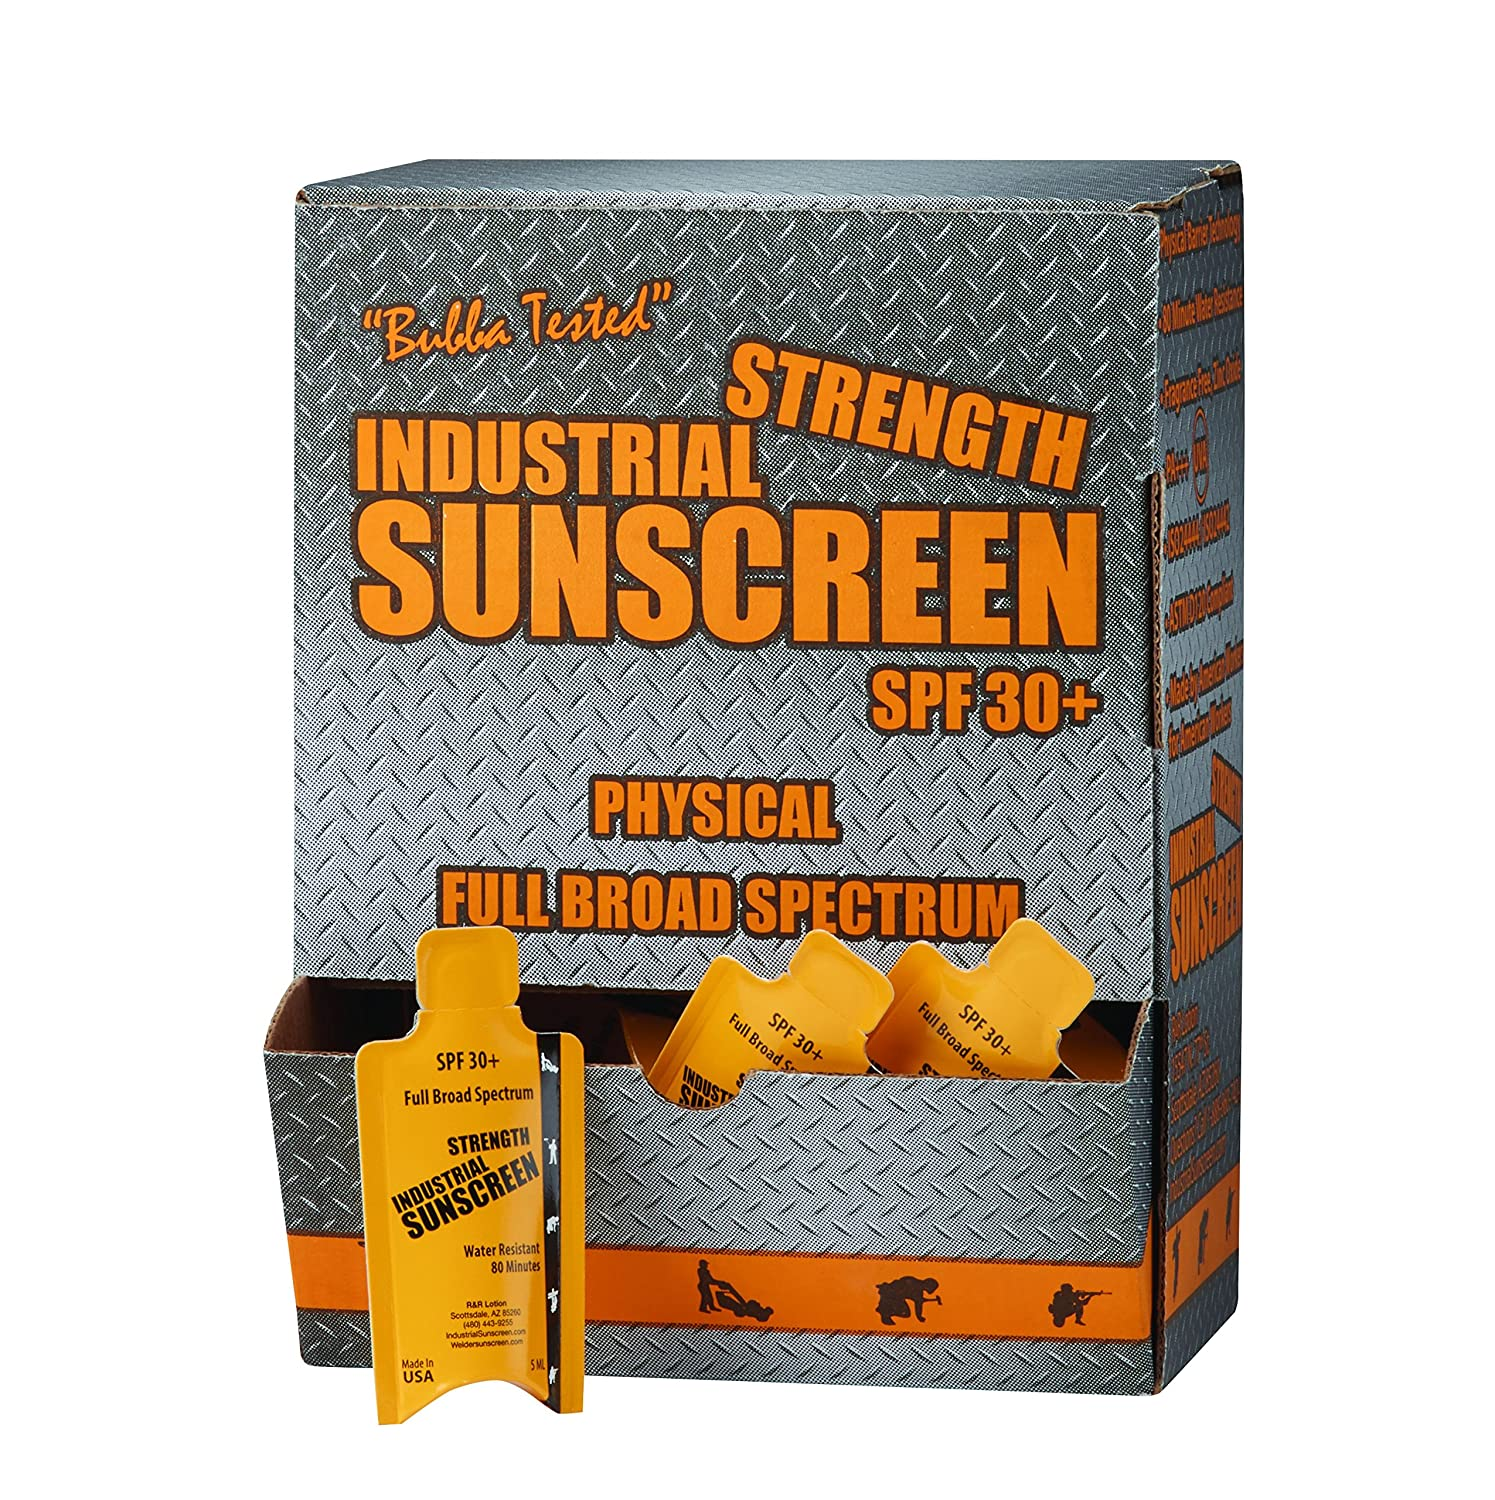 R&R Lotion ICSSP-50-30+ Industrial Sunscreen Packet, 5 fl.oz. Capacity, 5 mL ICSSP-30+FF-50